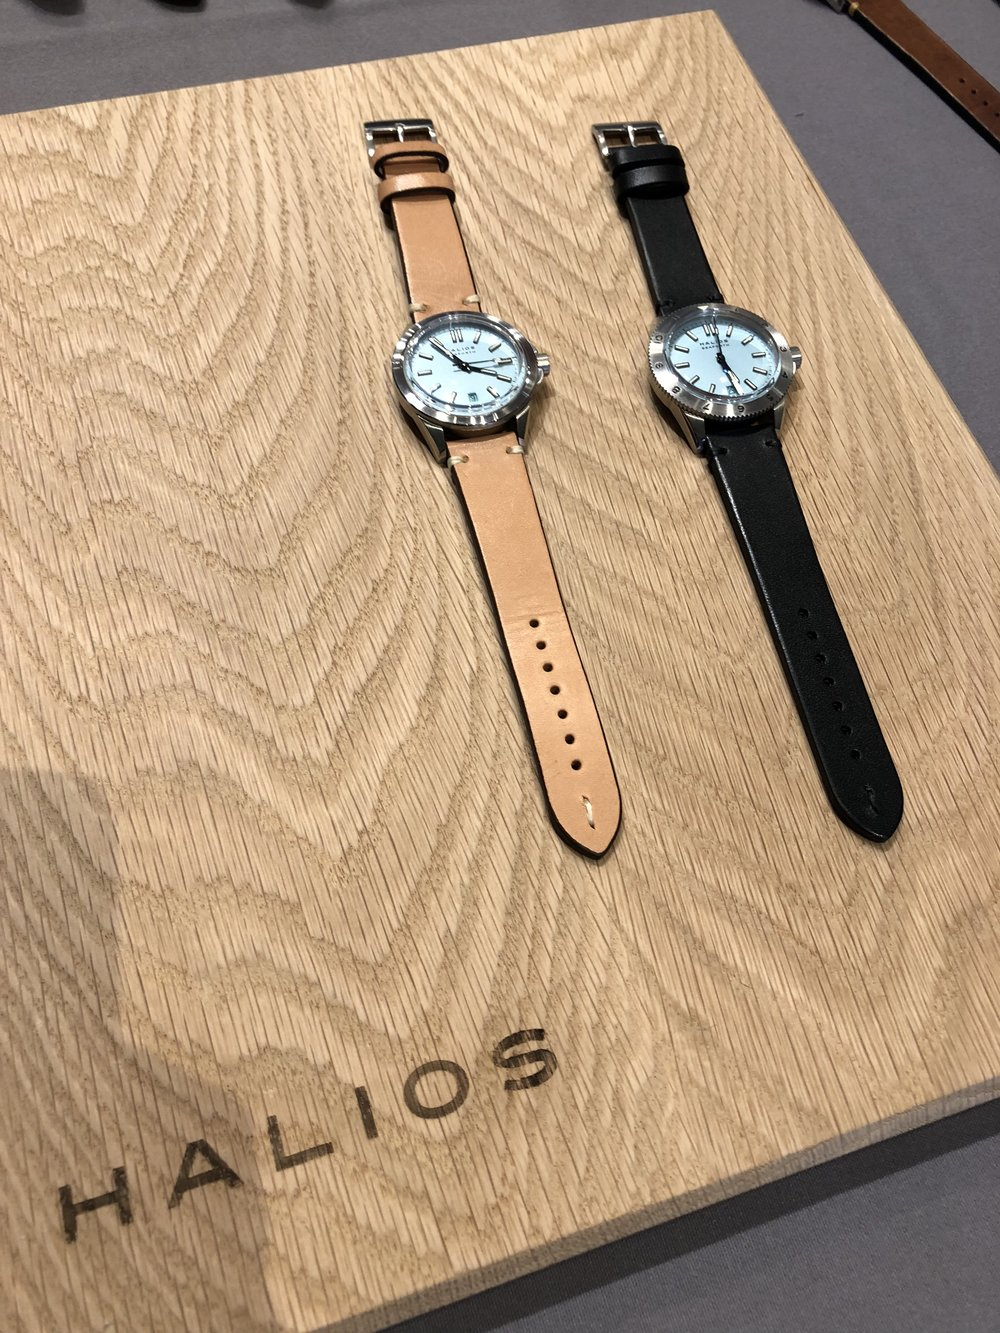 Halios Watches with Light Blue Faces